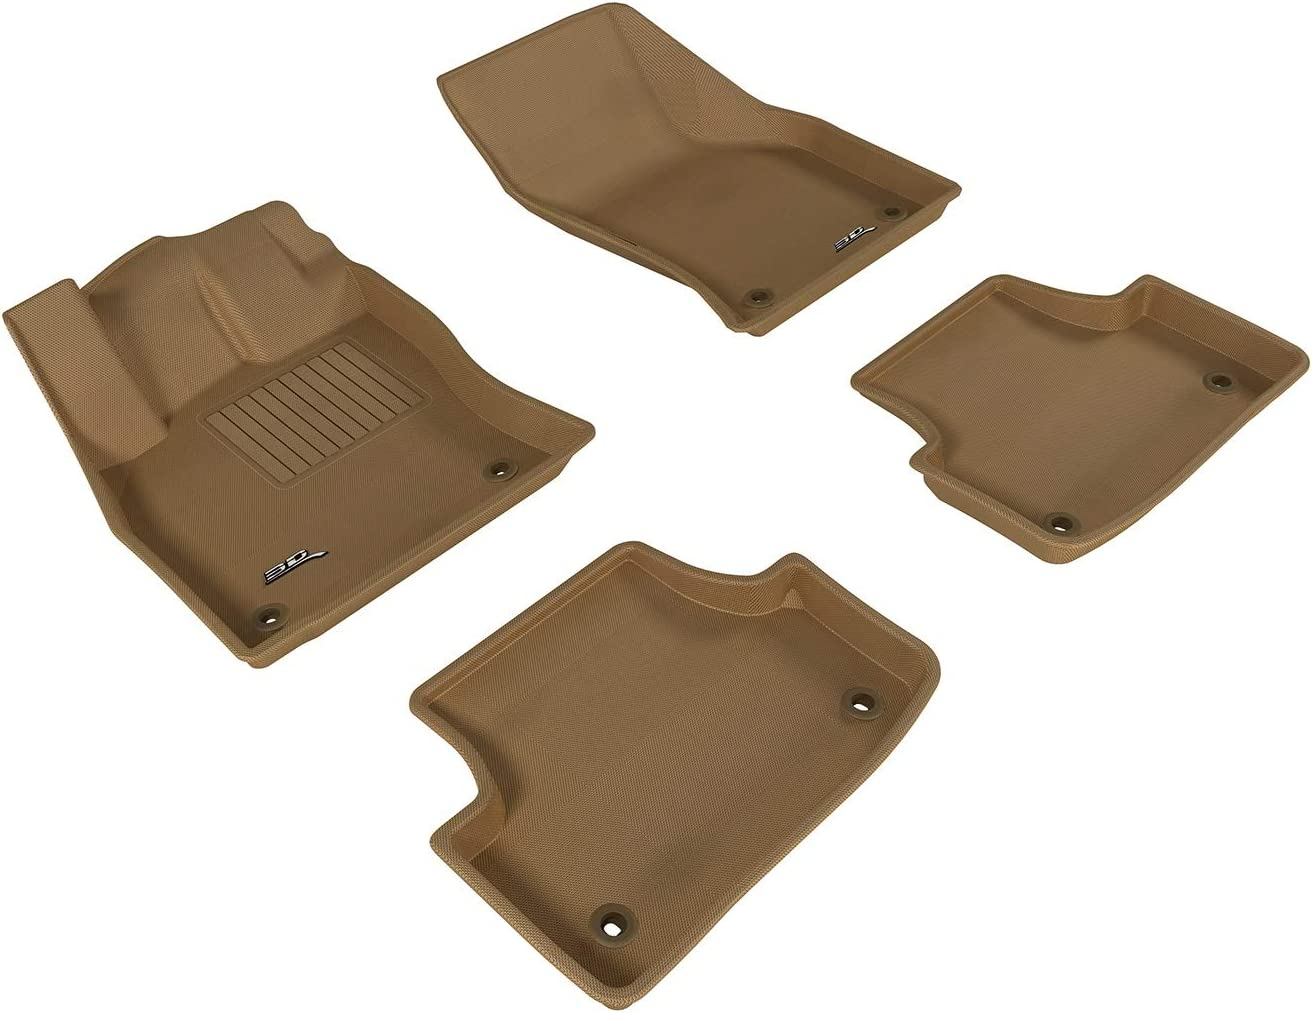 3D MAXpider Complete Set Custom Fit All-Weather Floor Mat for Select Audi A3/S3 Models - Kagu Rubber (Tan) 6148JqyFSOL